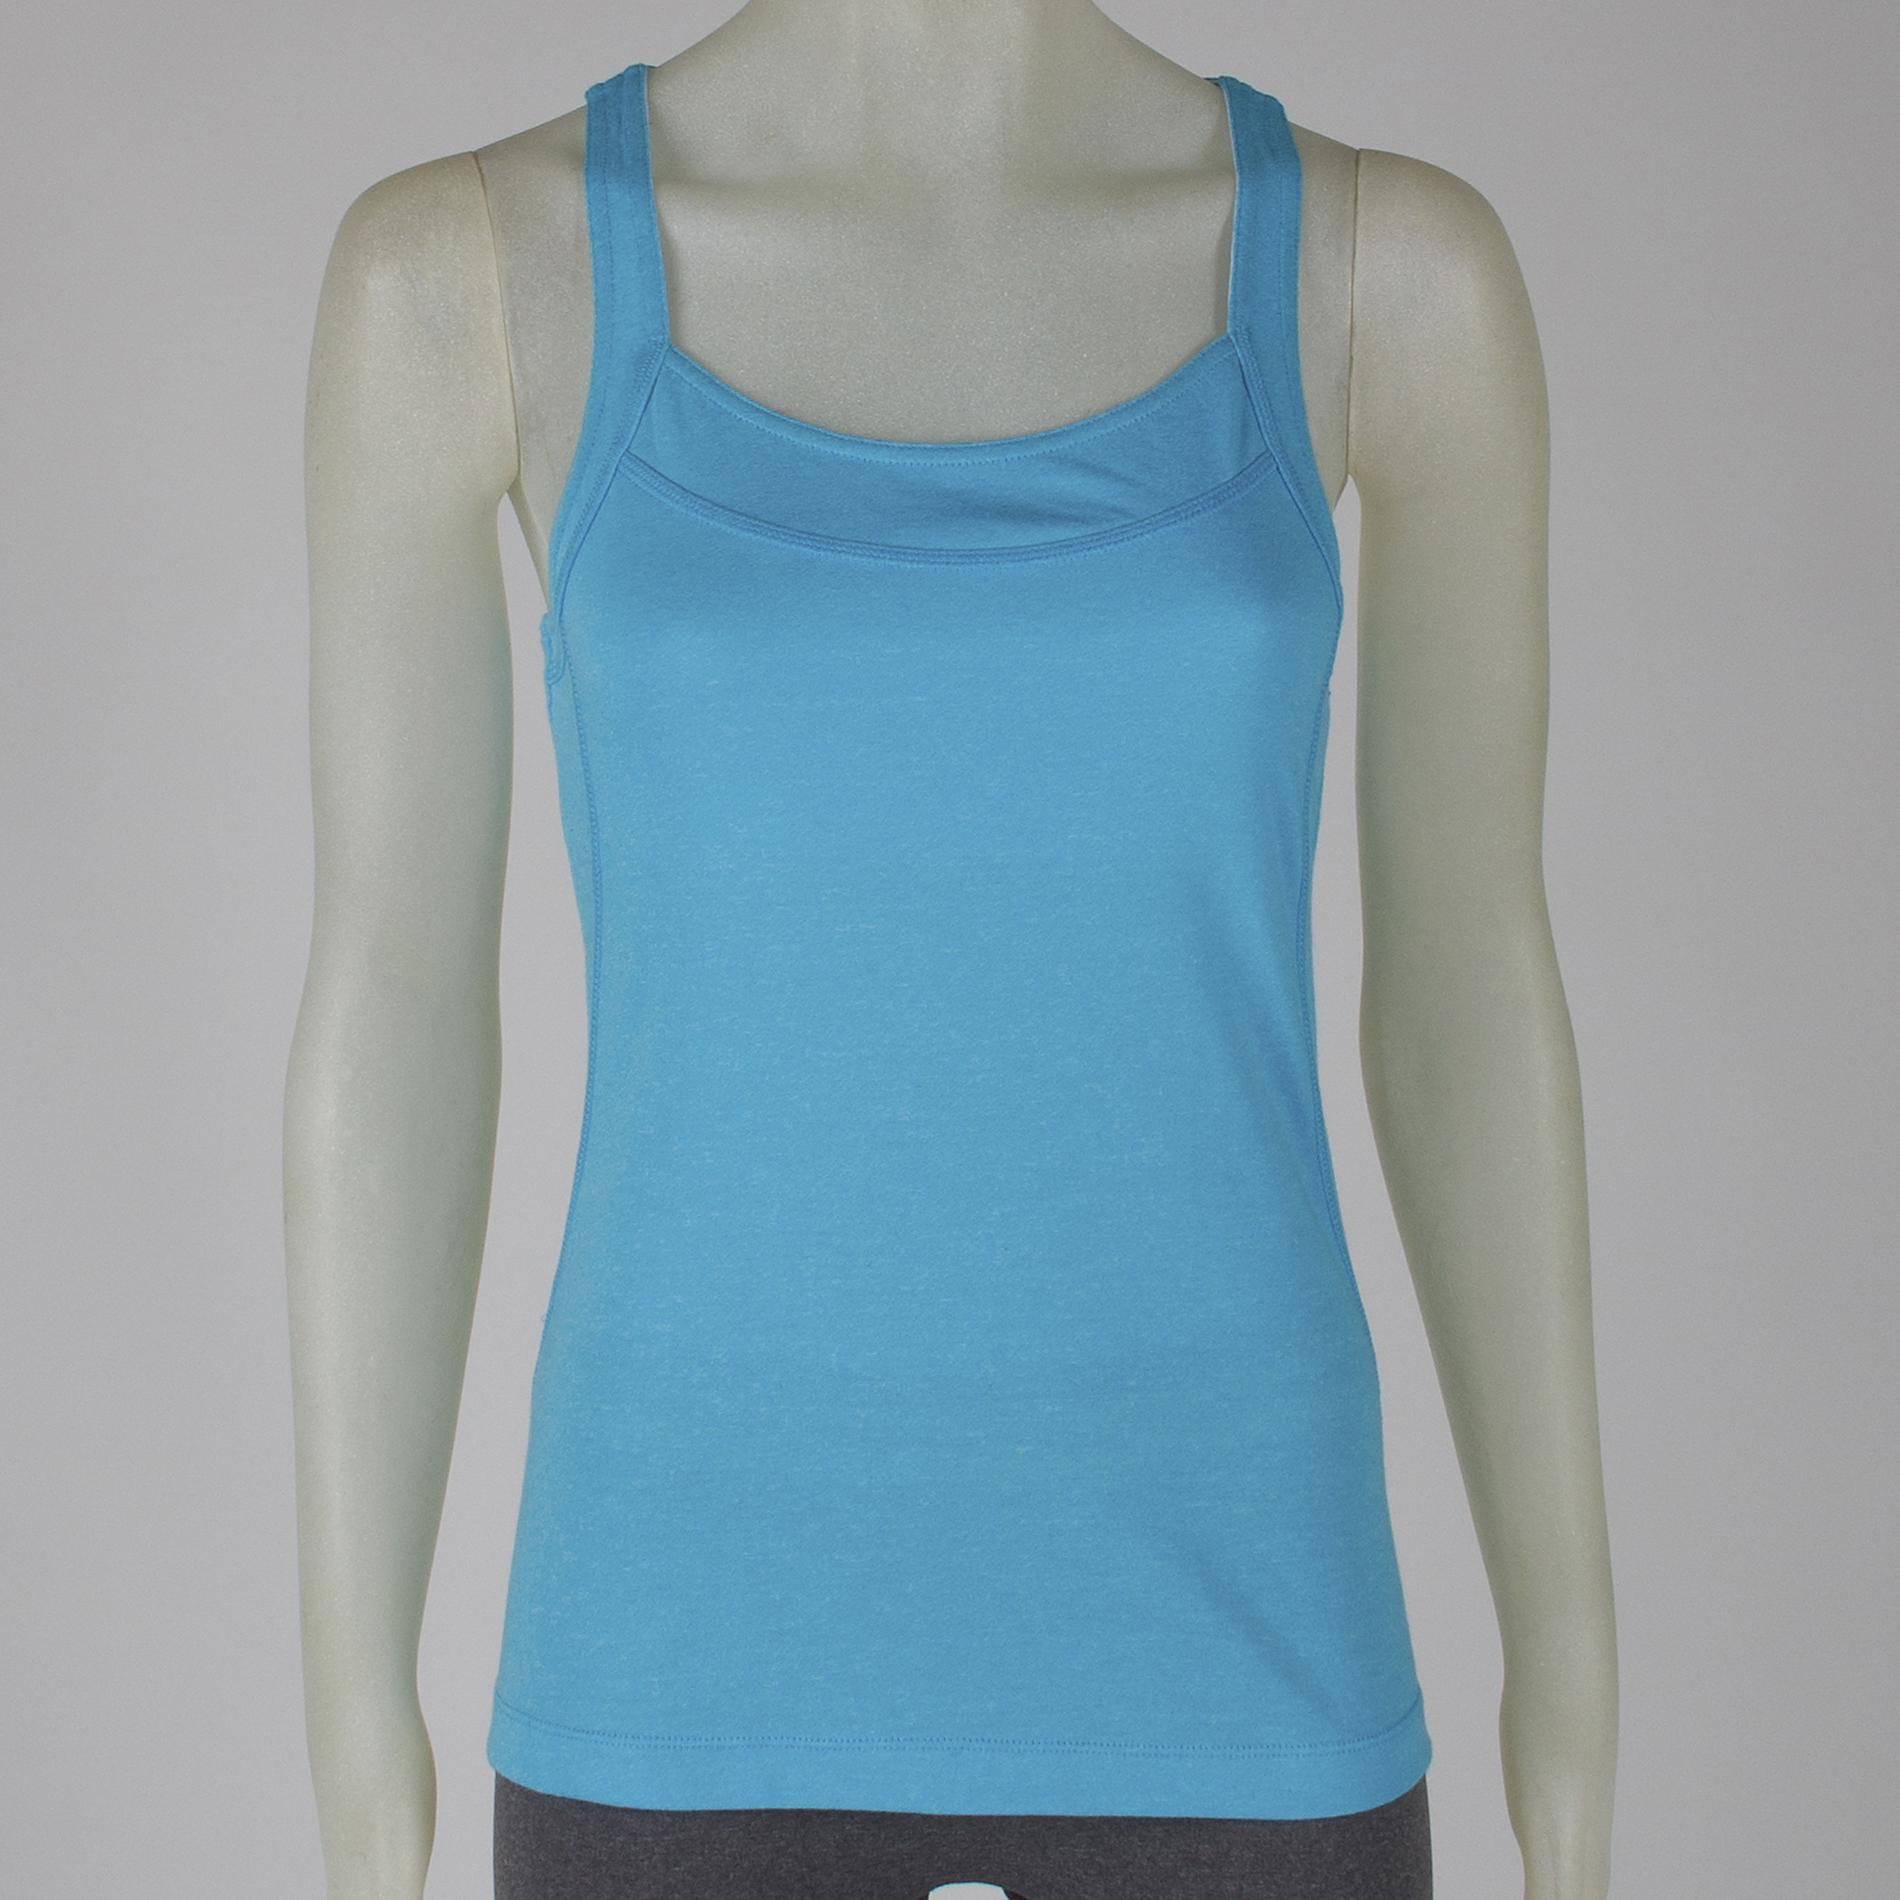 Everlast® Women's Workout Top - Melange at Sears.com